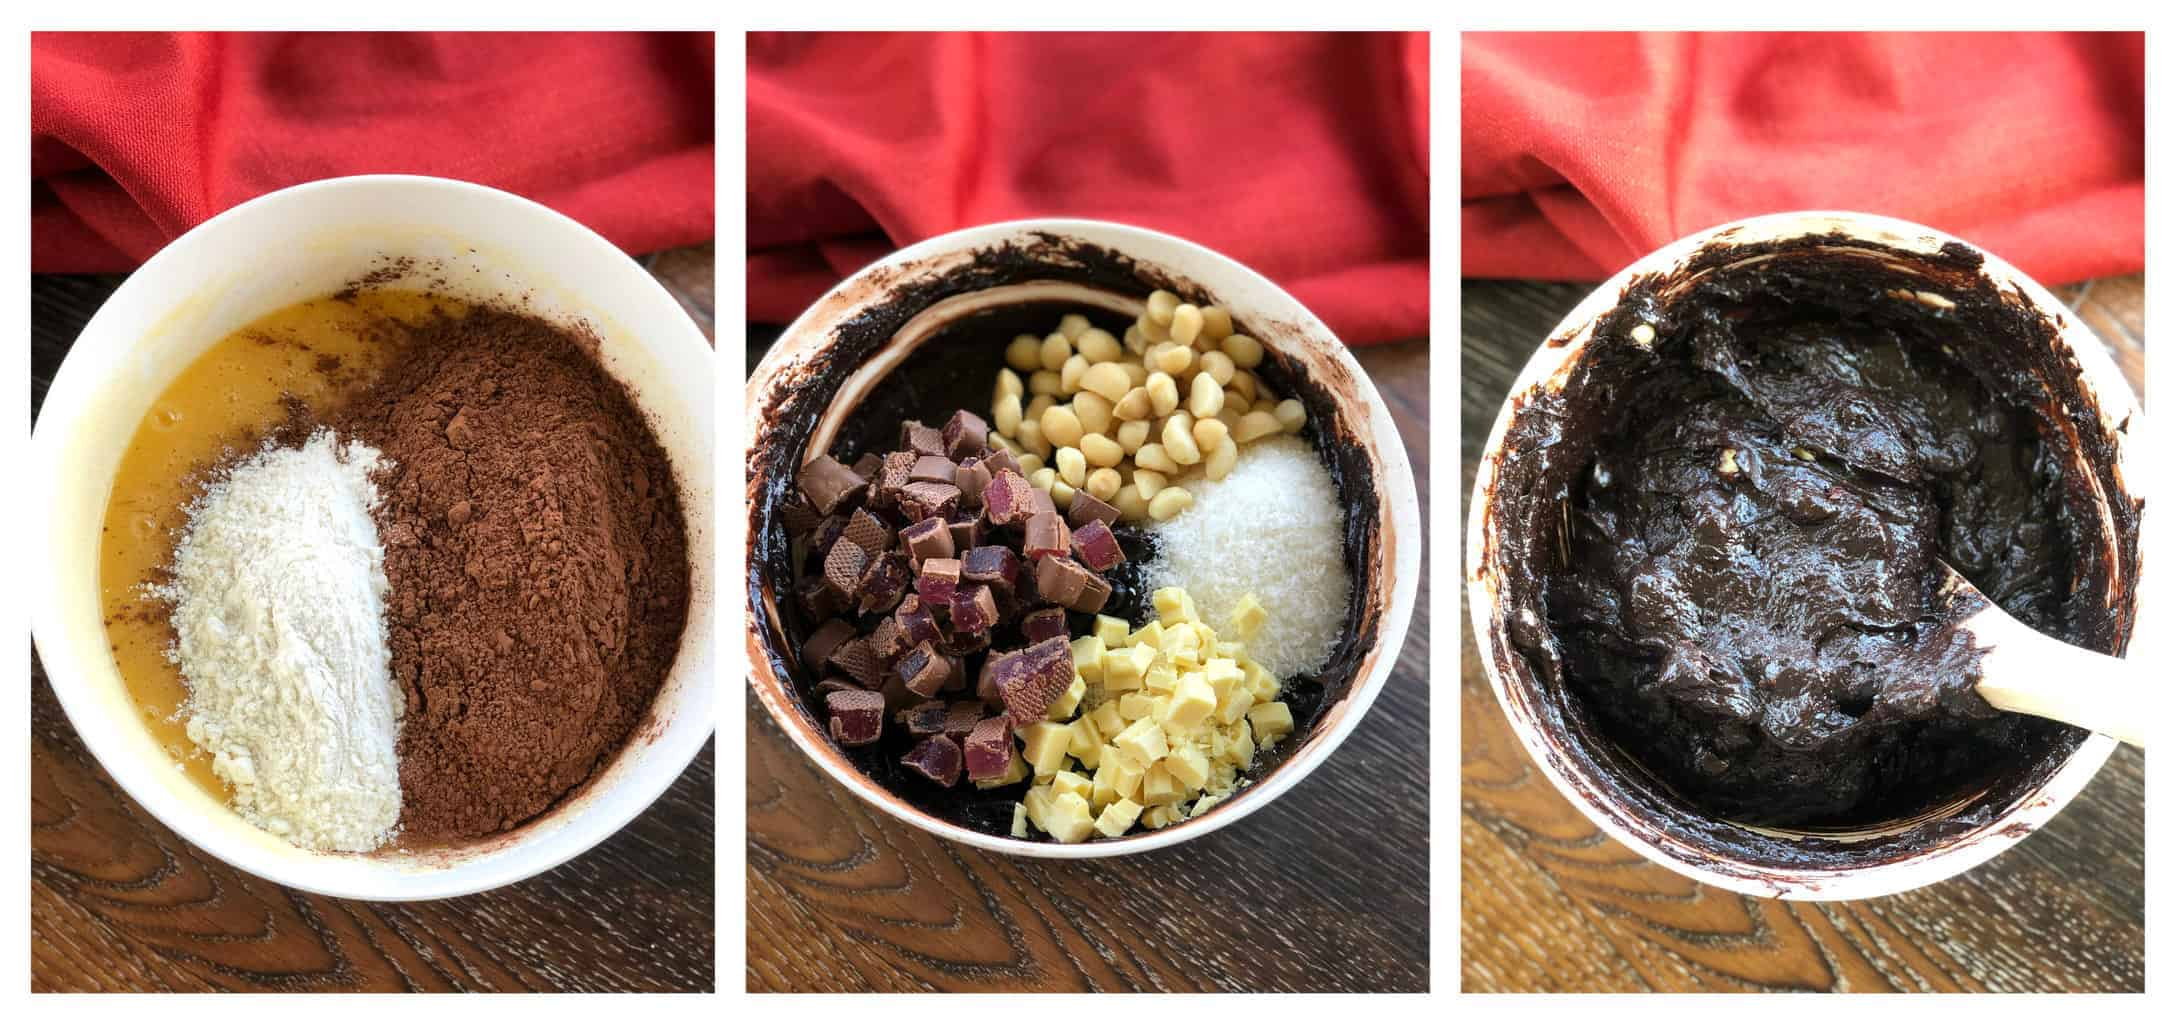 How to make rocky road brownie